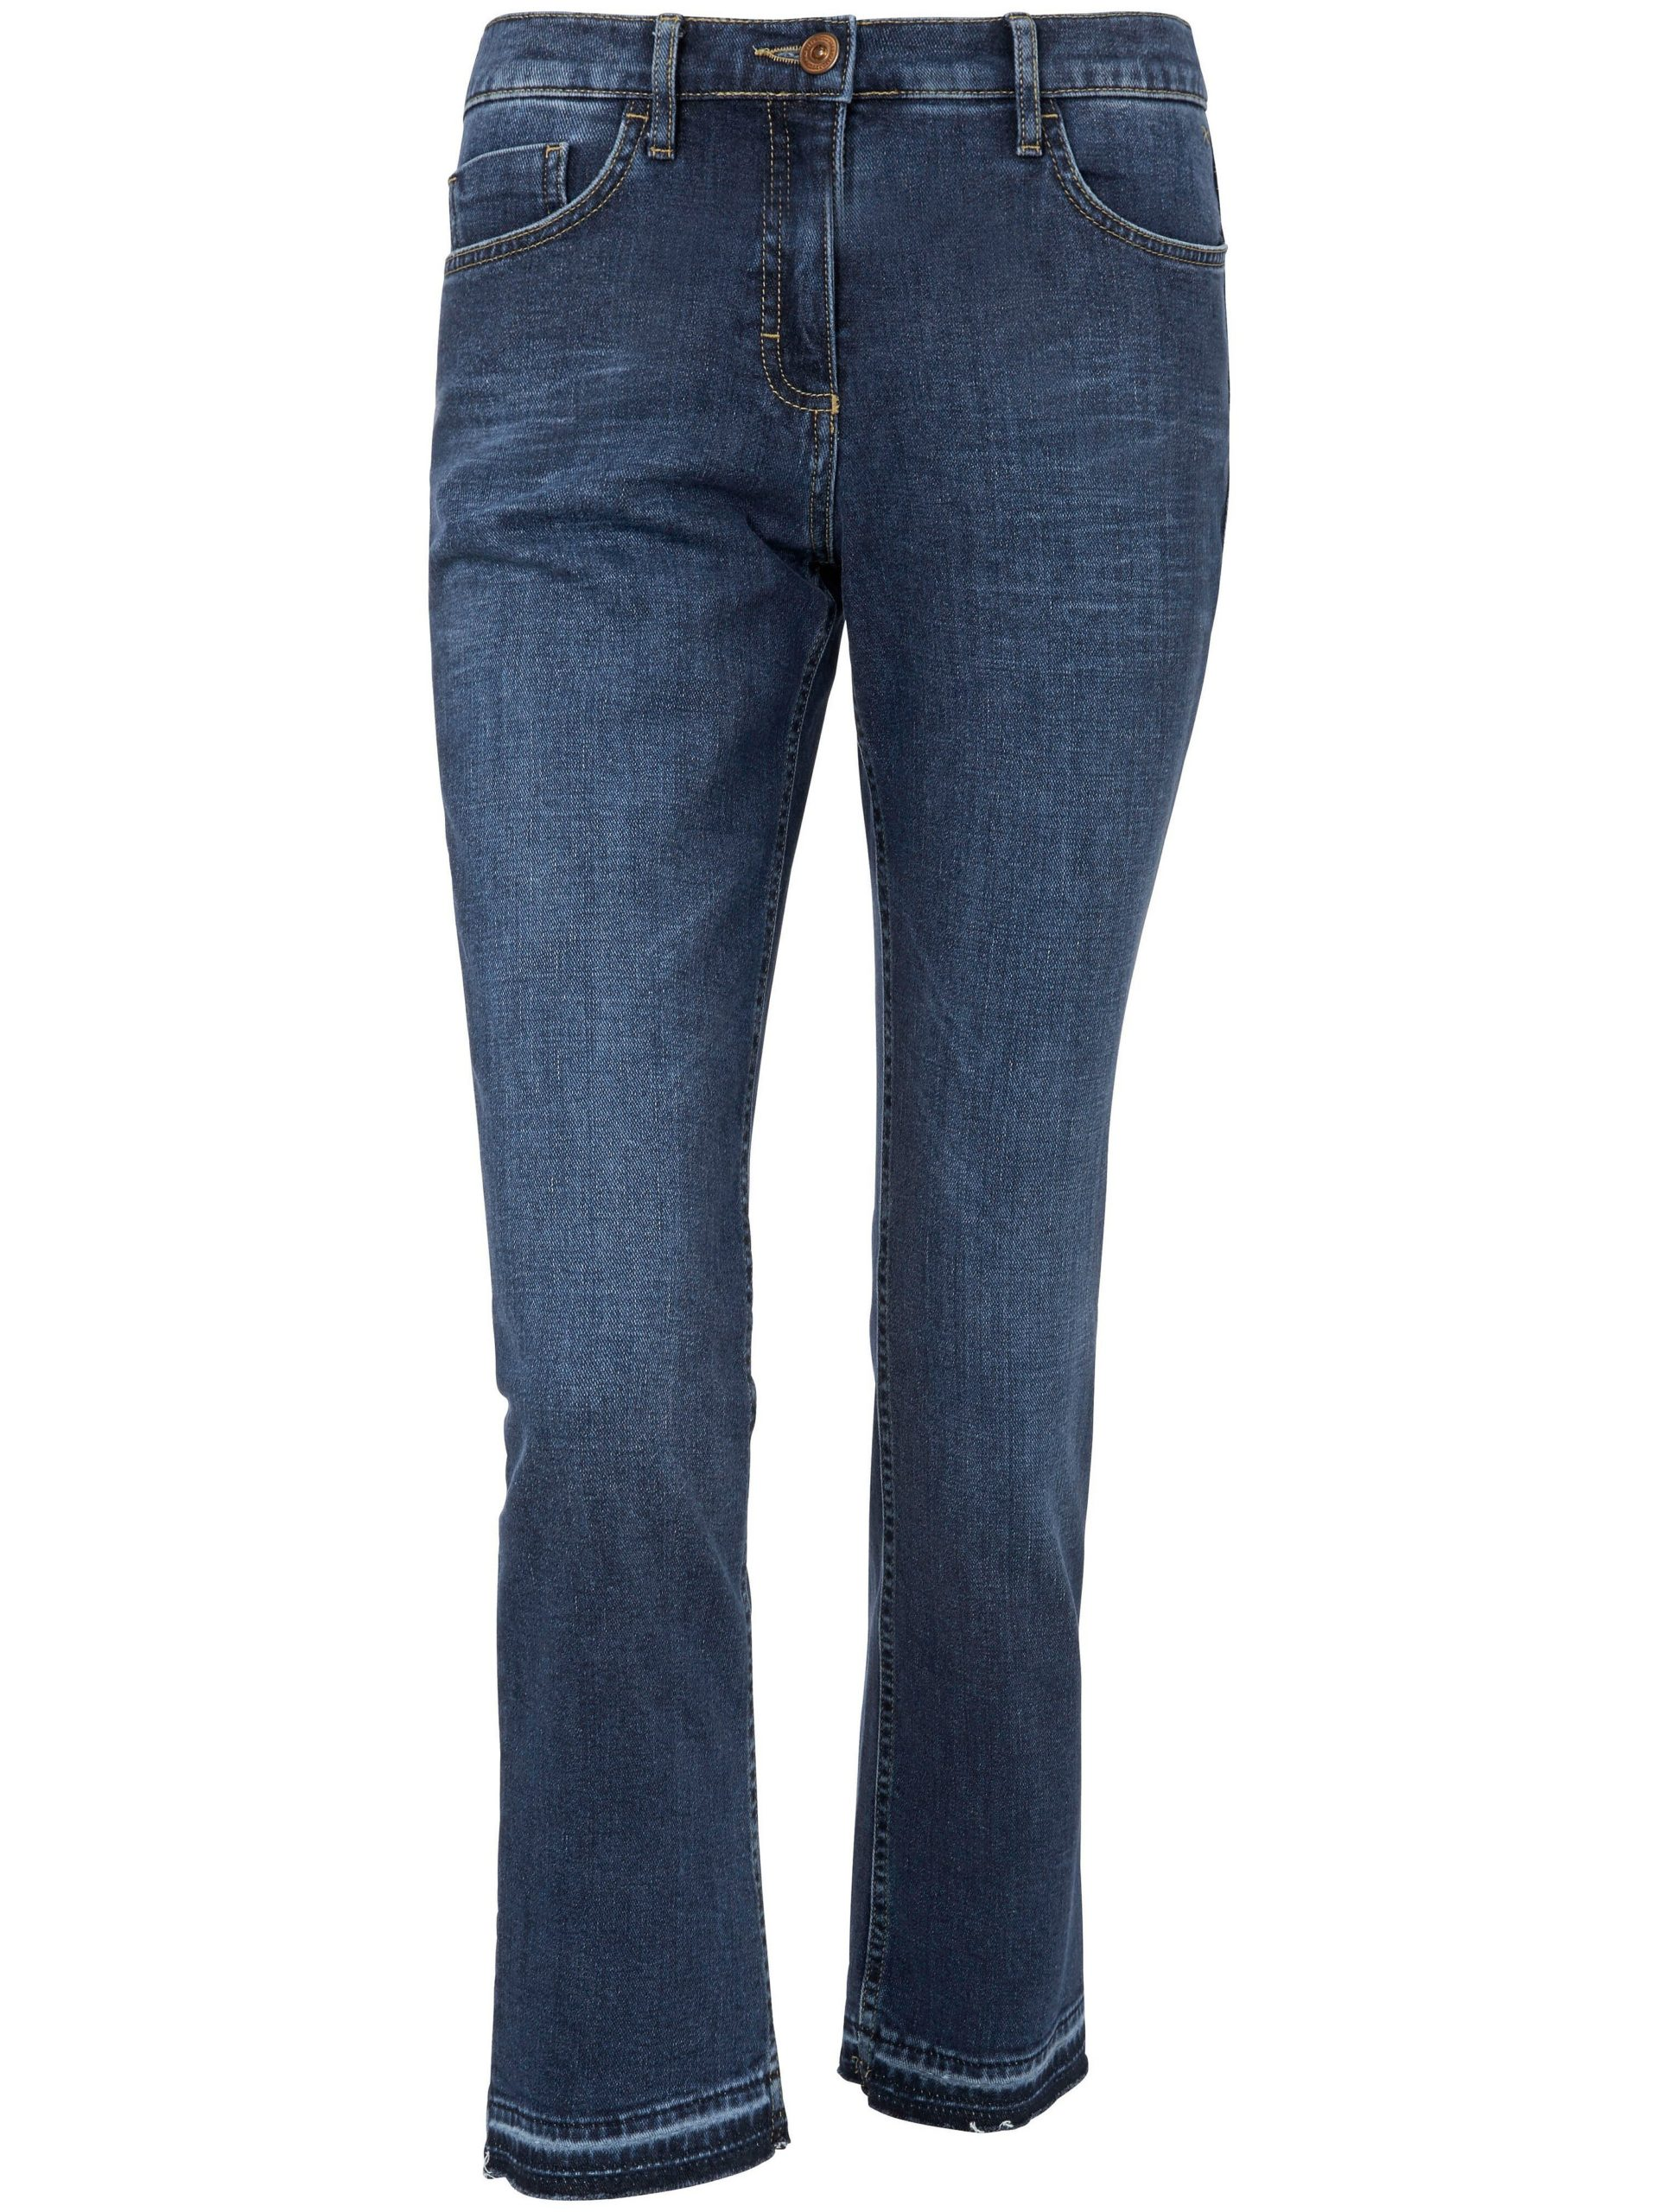 'Modern Fit'-7/8-jeans Van Brax Feel Good denim Kopen